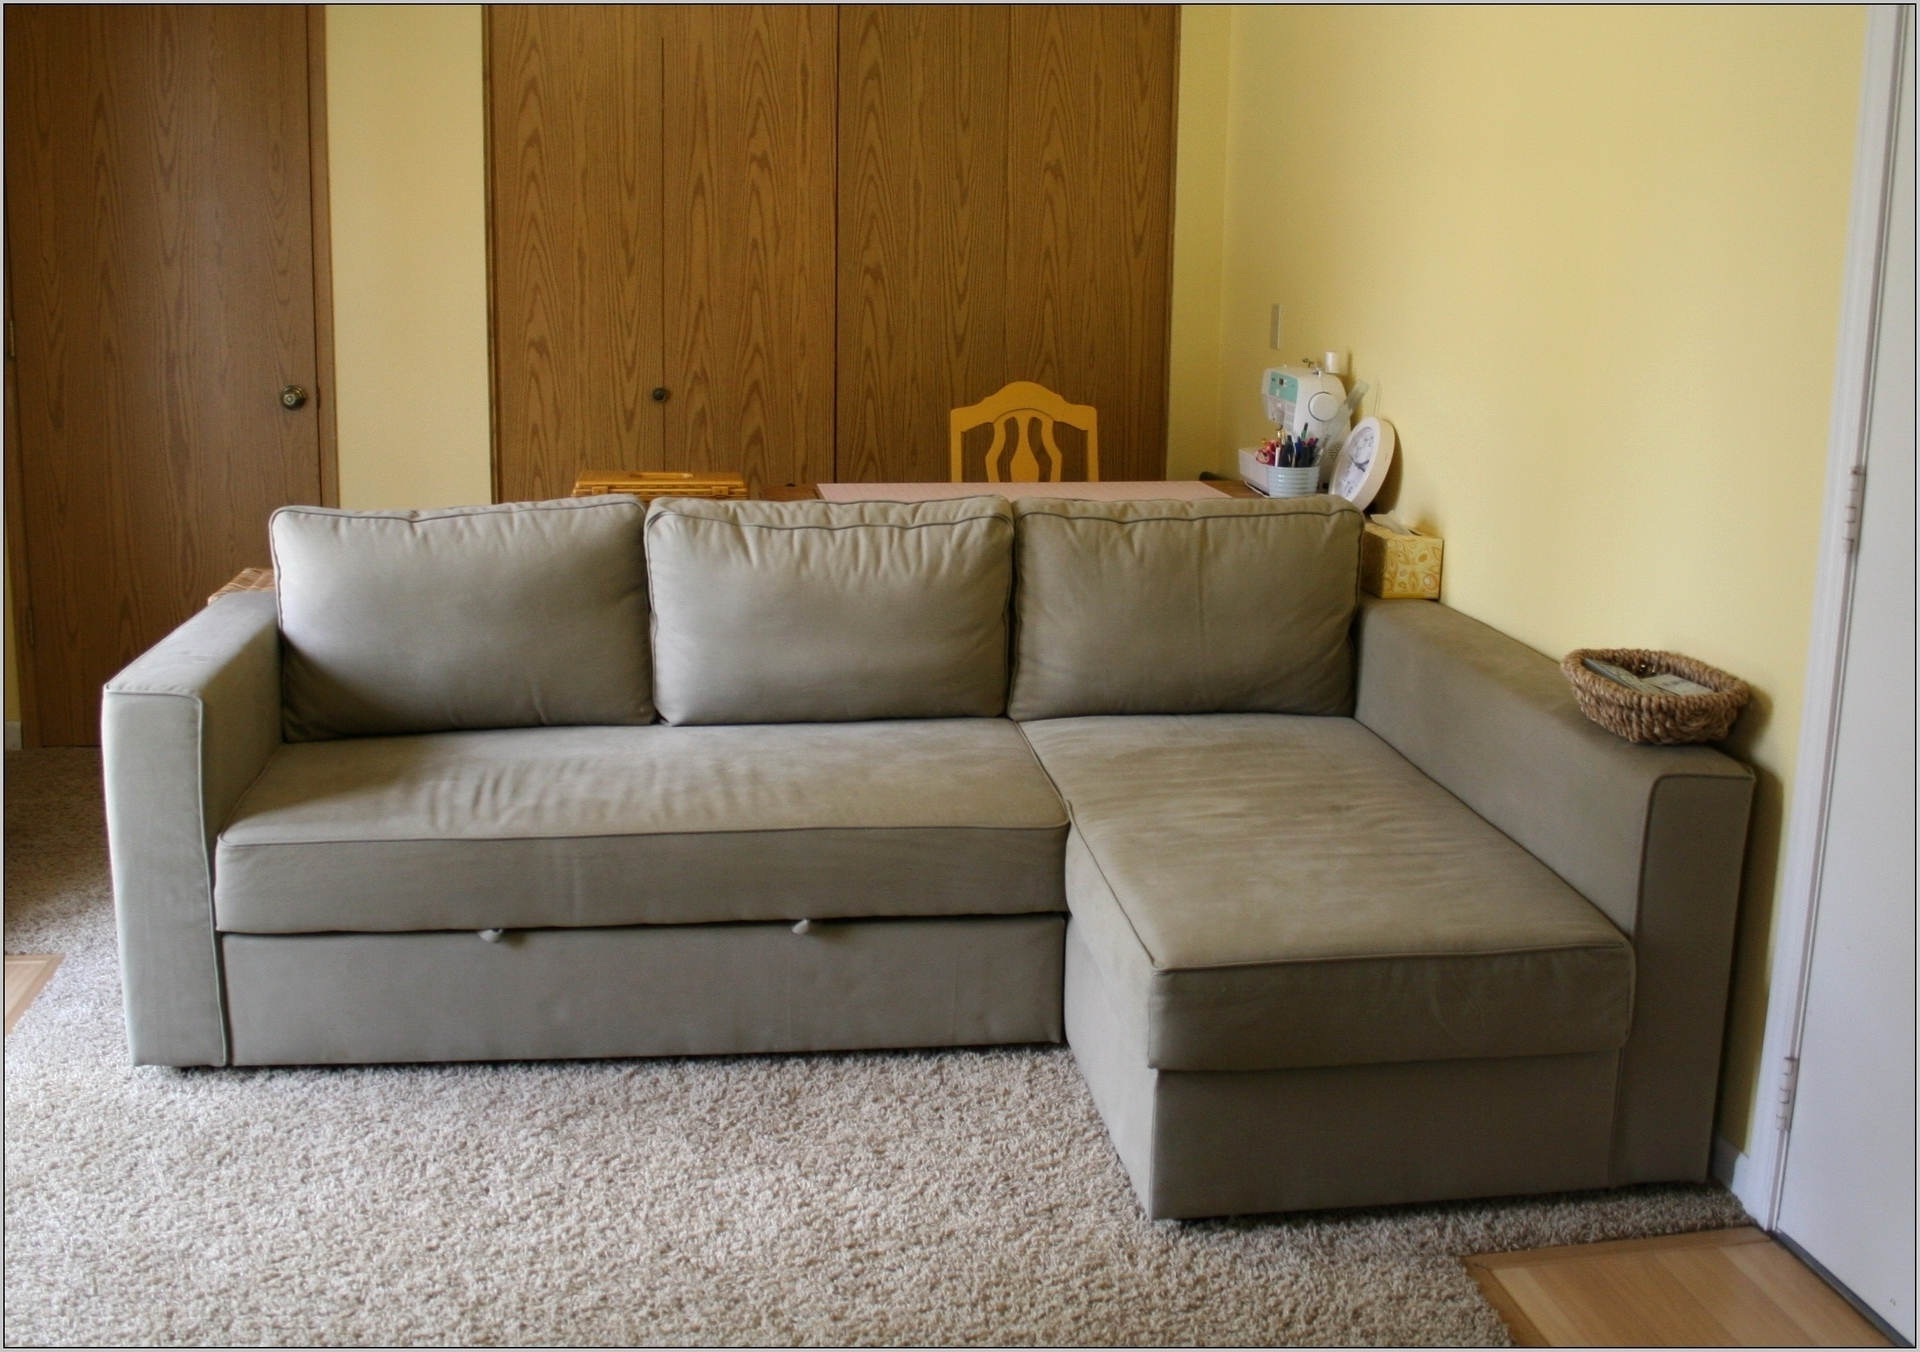 Trendy Ikea Sofa Beds With Chaise Within New Sofa Bed Ikea 2018 – Couches And Sofas Ideas (View 15 of 15)